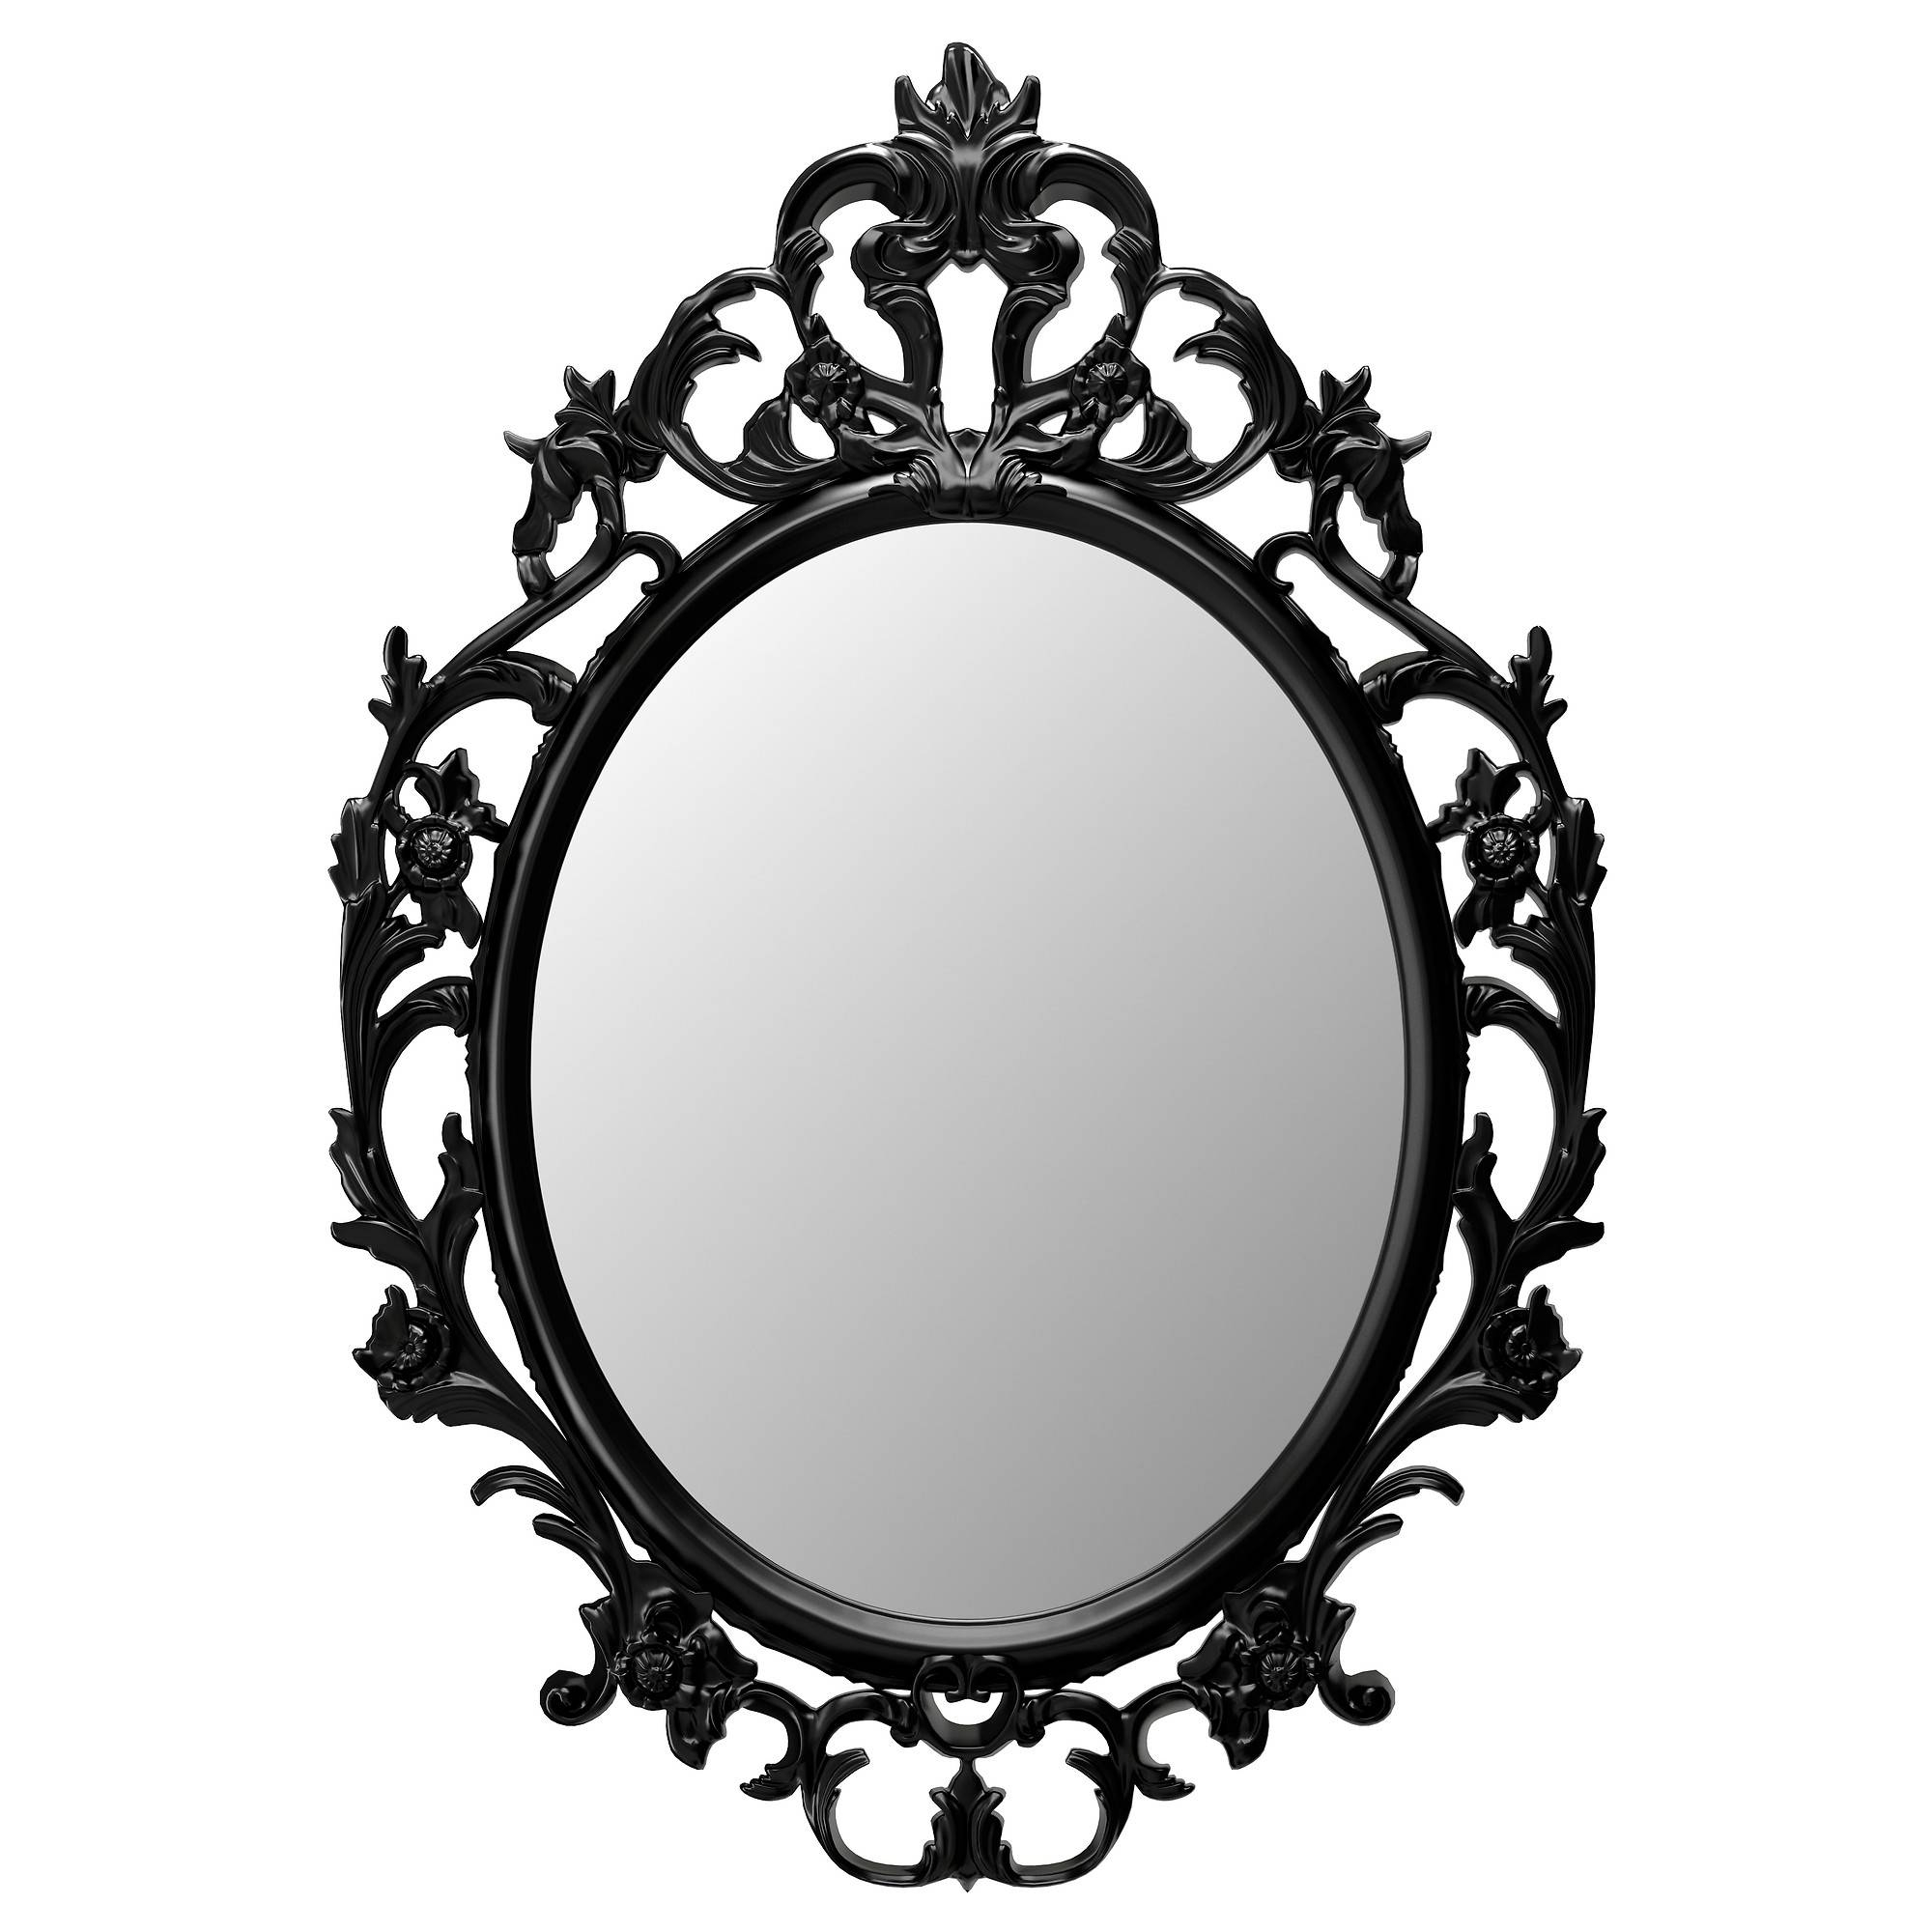 Ung Drill Mirror - Ikea with Black Ornate Mirrors (Image 14 of 15)